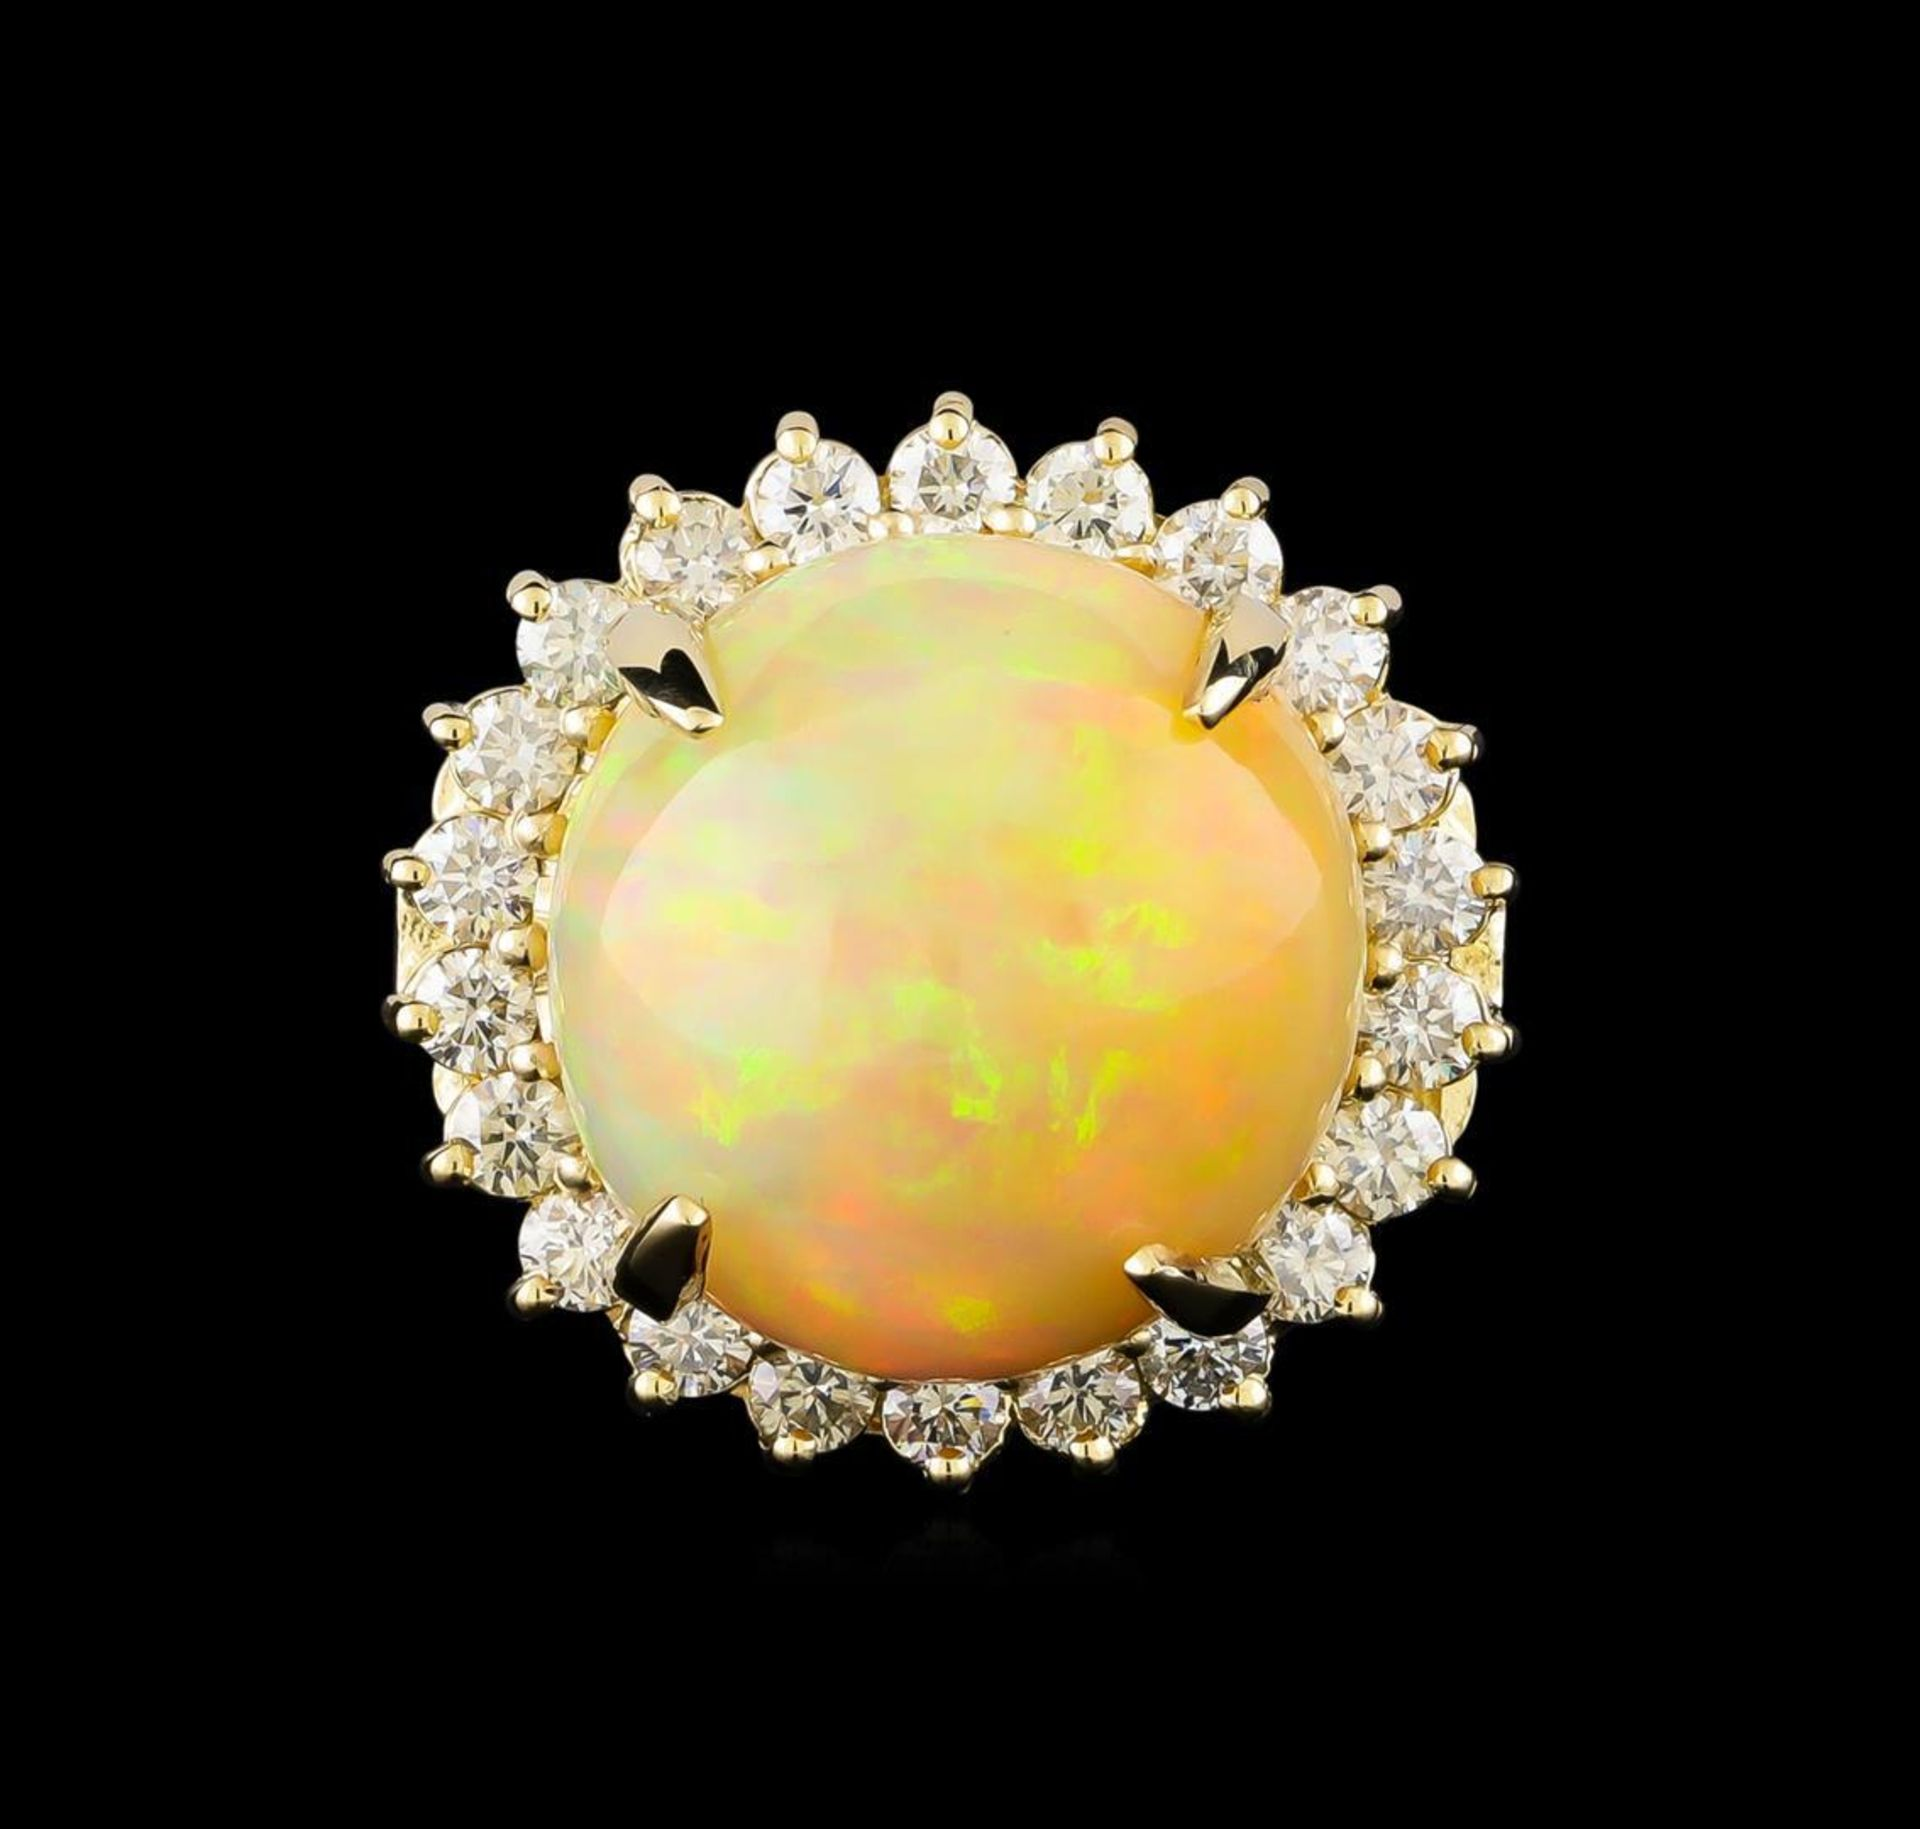 19.85 ctw Opal and Diamond Ring - 14KT Yellow Gold - Image 2 of 5